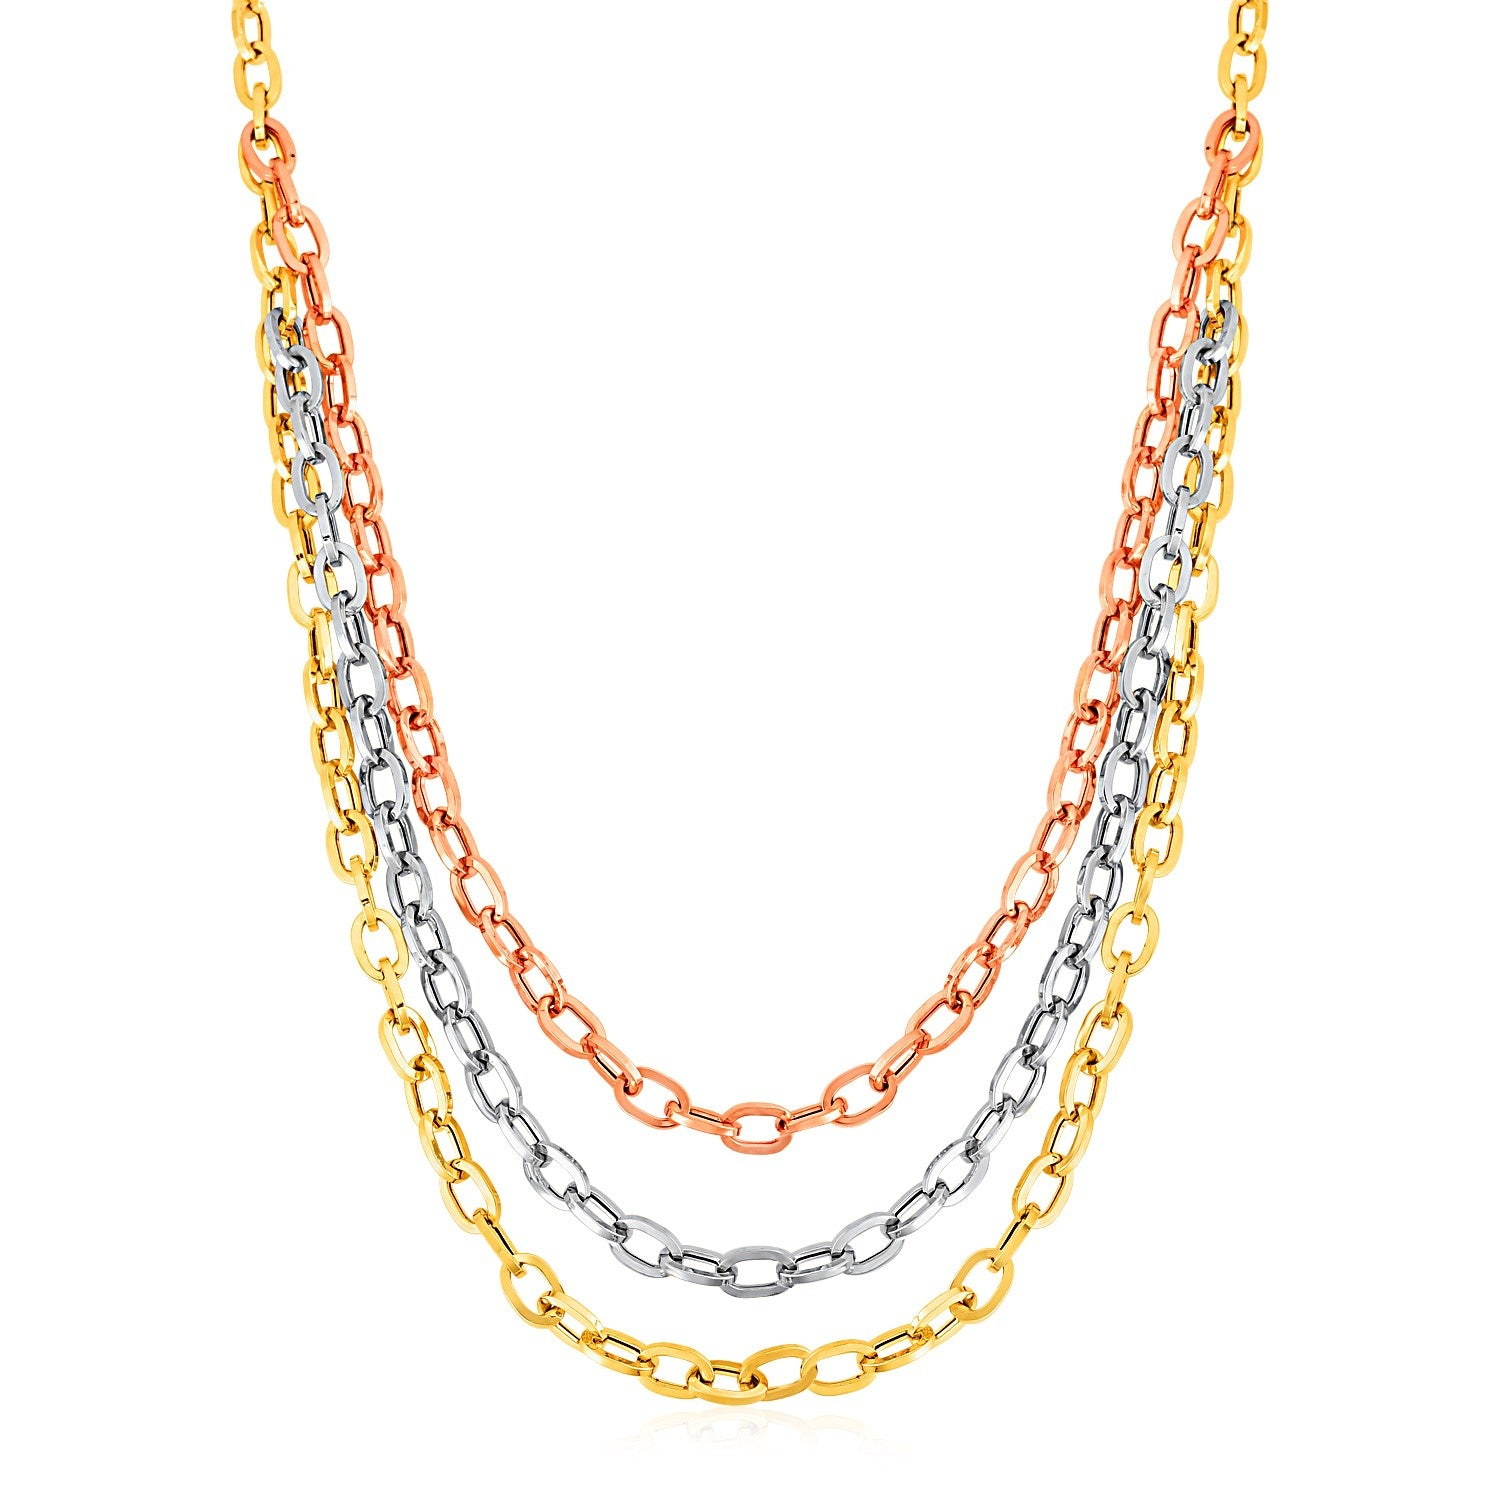 Unique Hollywood Style Three Strand Oval Link Necklace in 14K Tri Color Gold